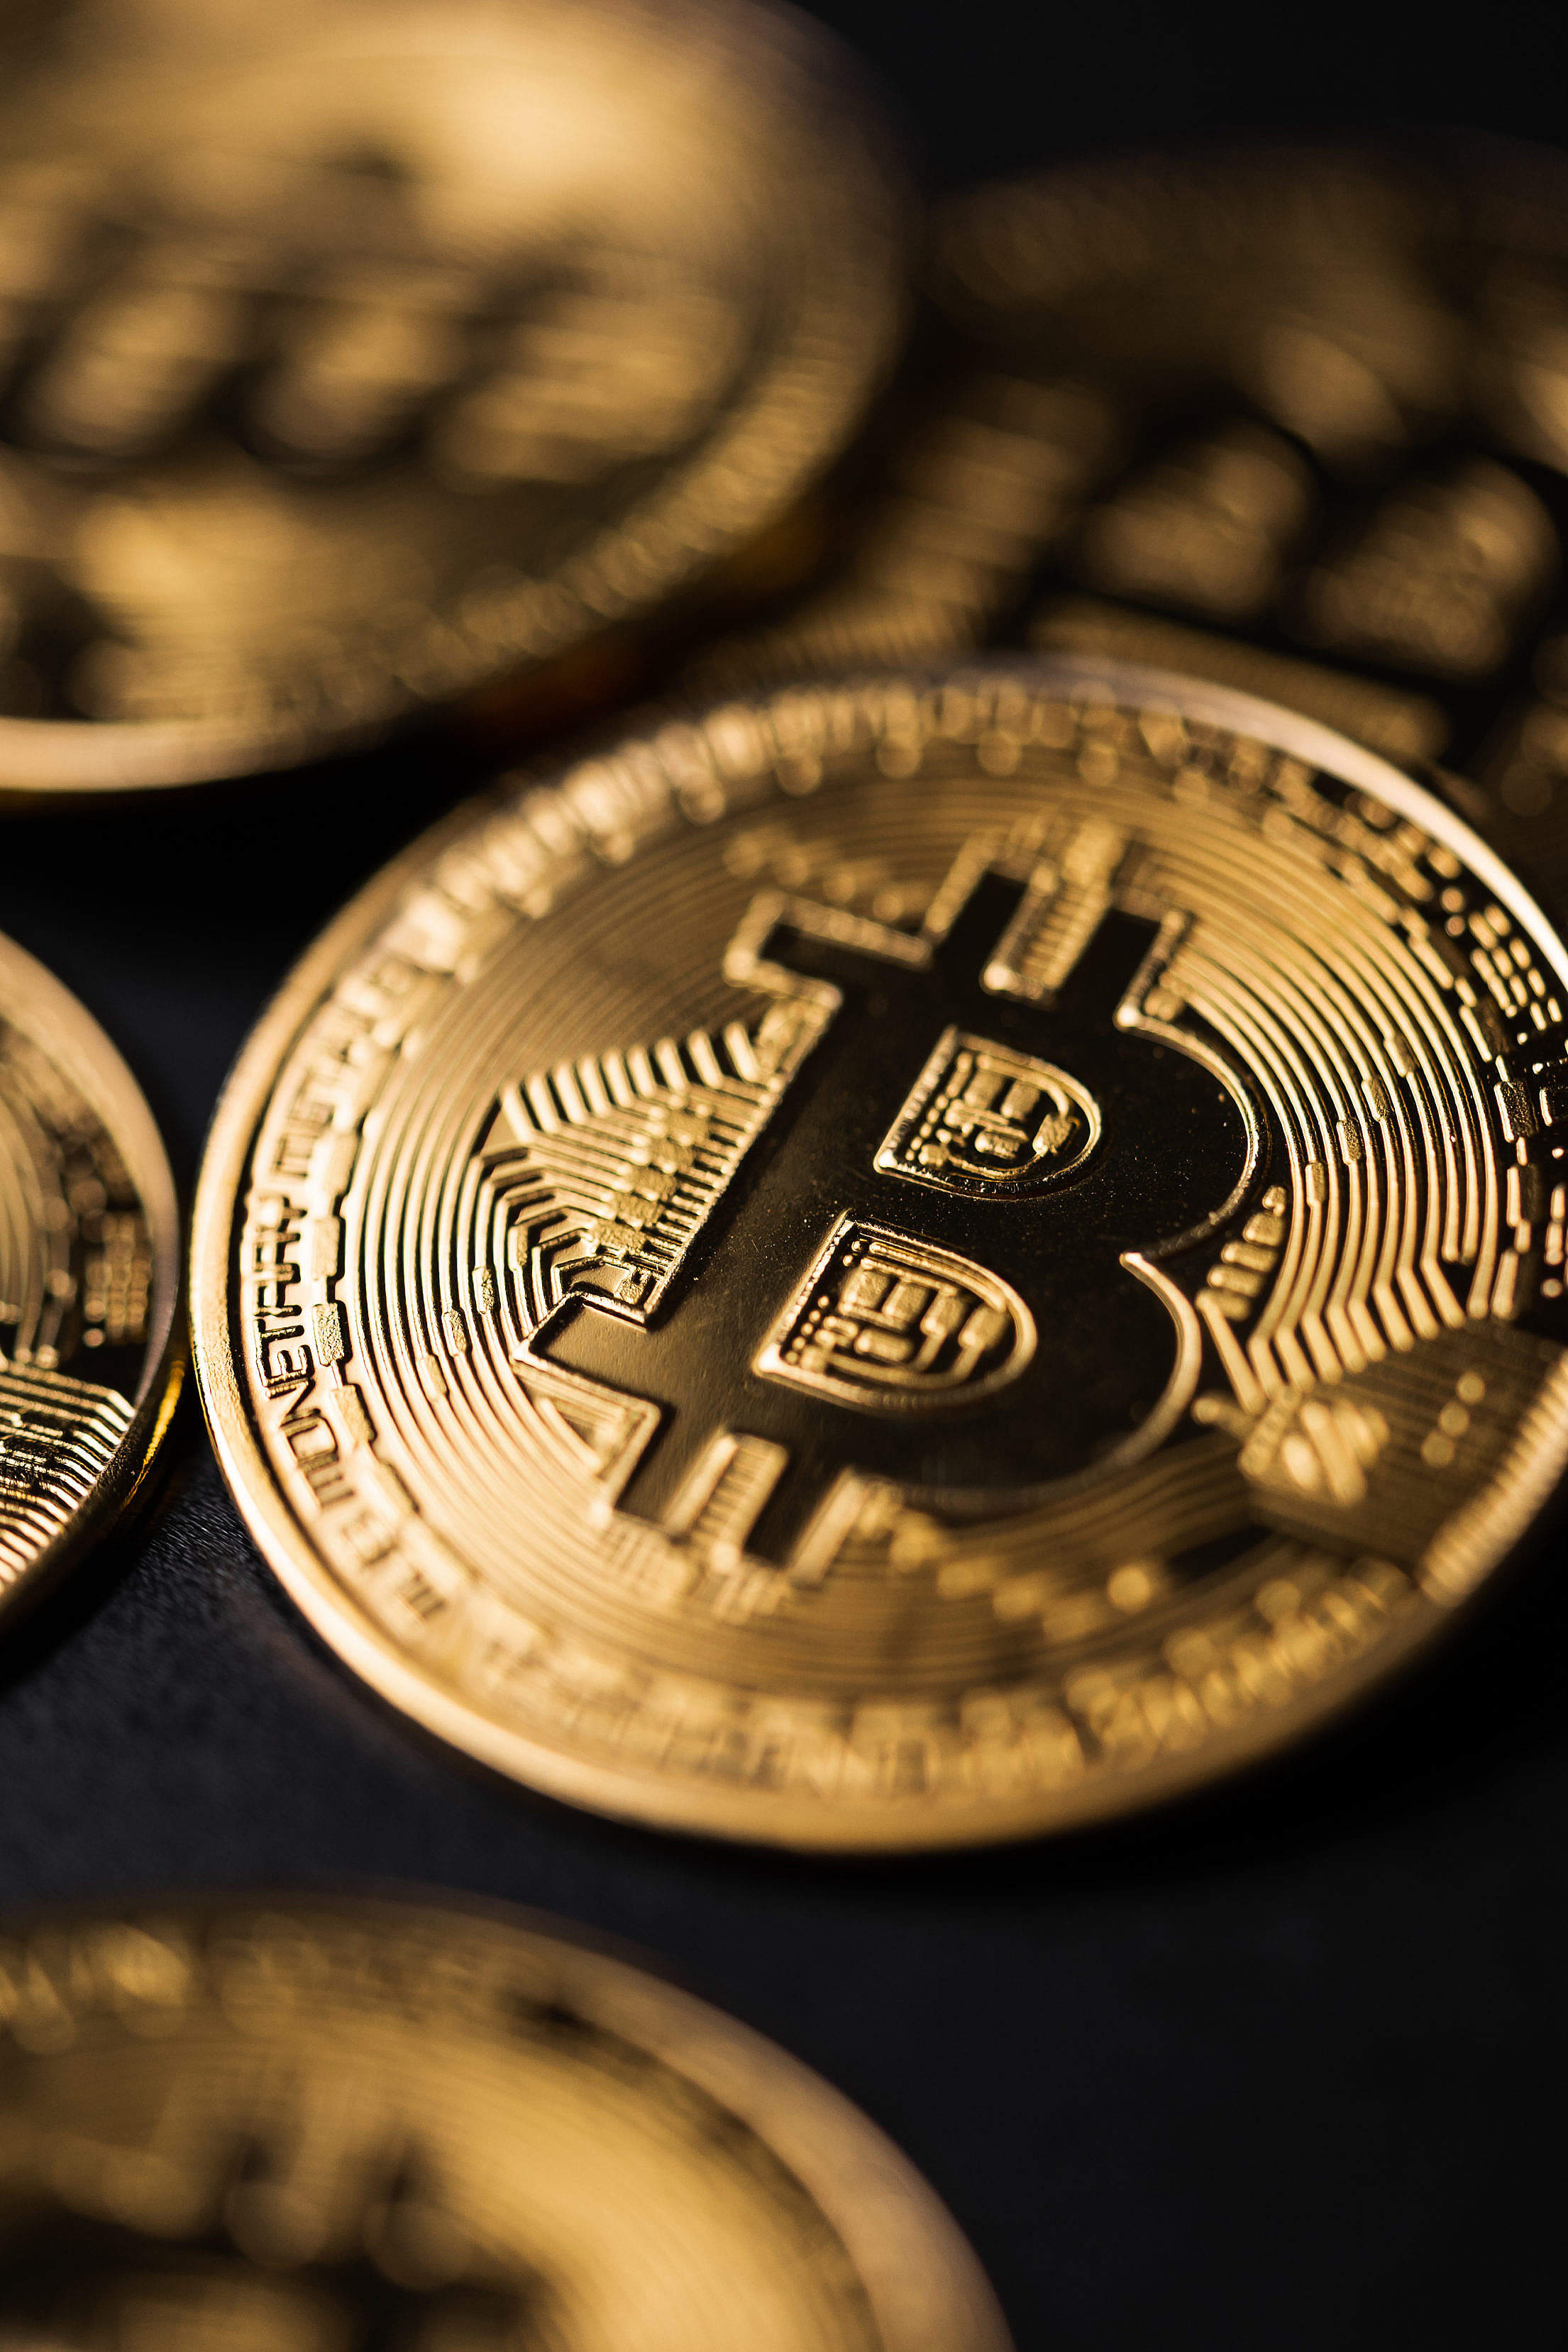 Crypto Currency Golden Coin with Black Bitcoin Symbol Free Stock Photo